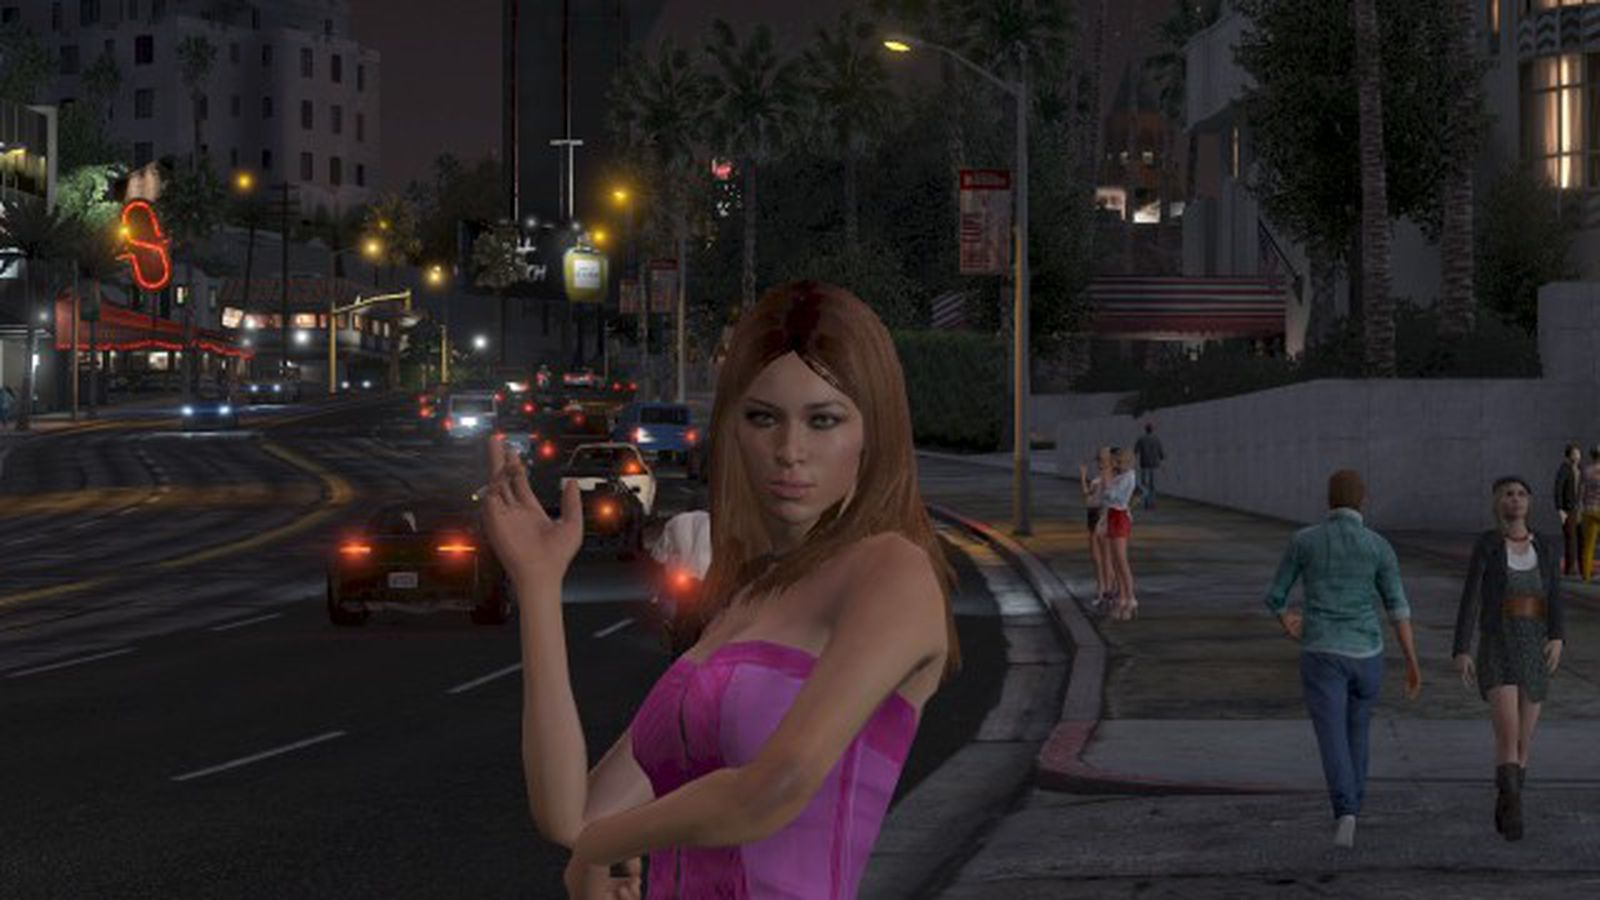 grand theft auto 5s misogyny is a problem its creators